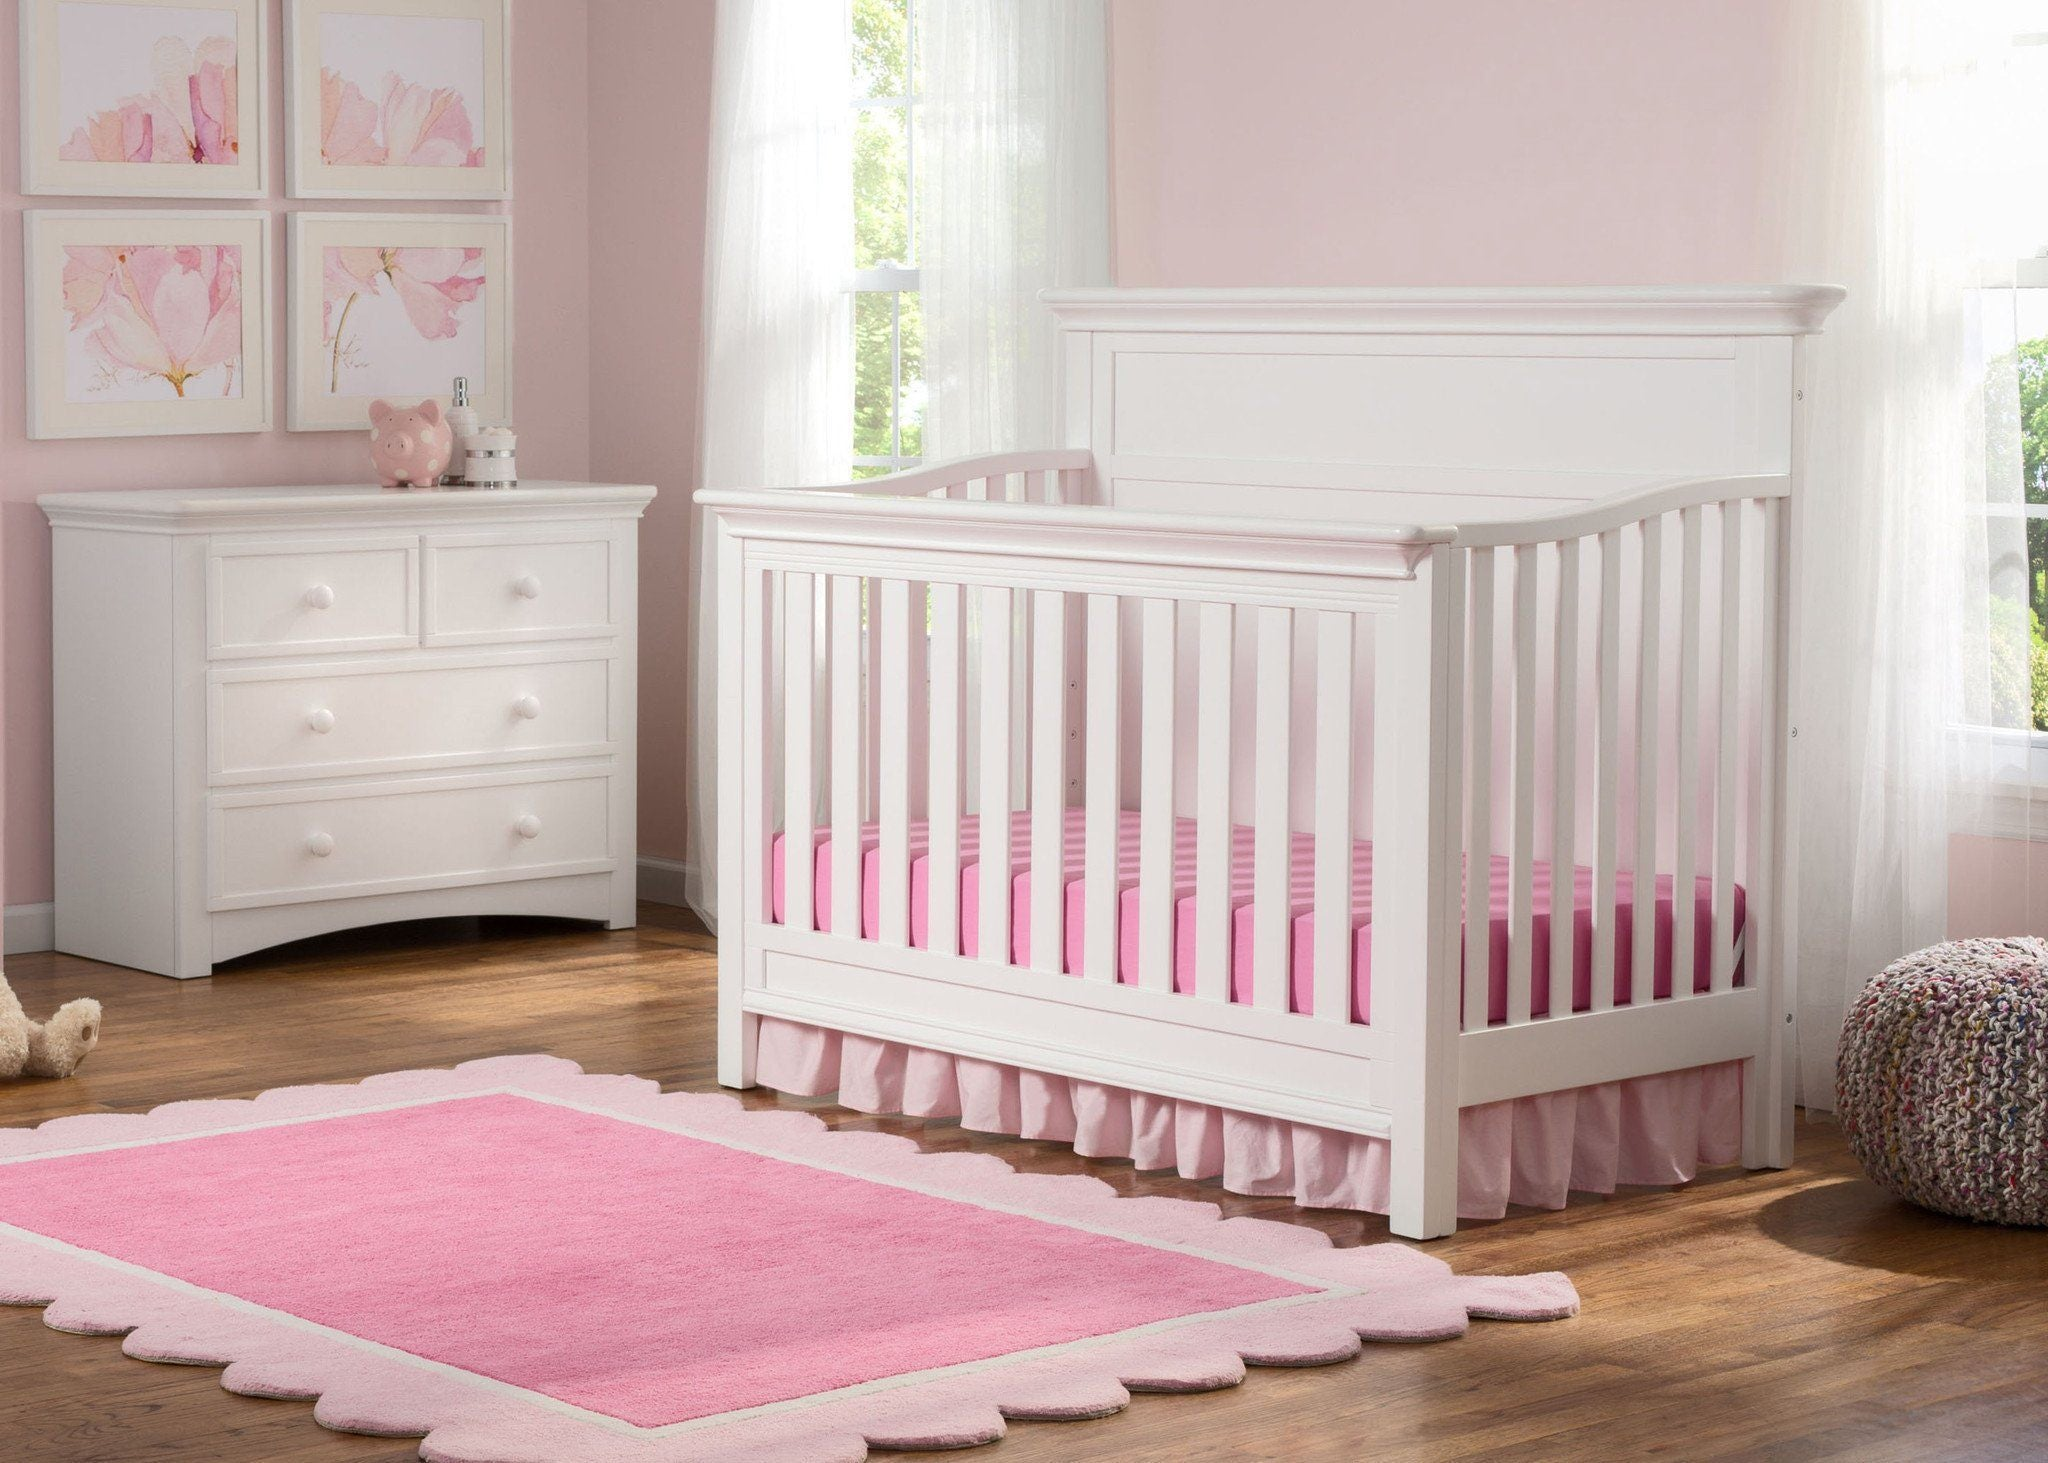 Serta Bianca White (130) Fairmount 4-in-1 Crib, Side View with Crib Conversion, Room View